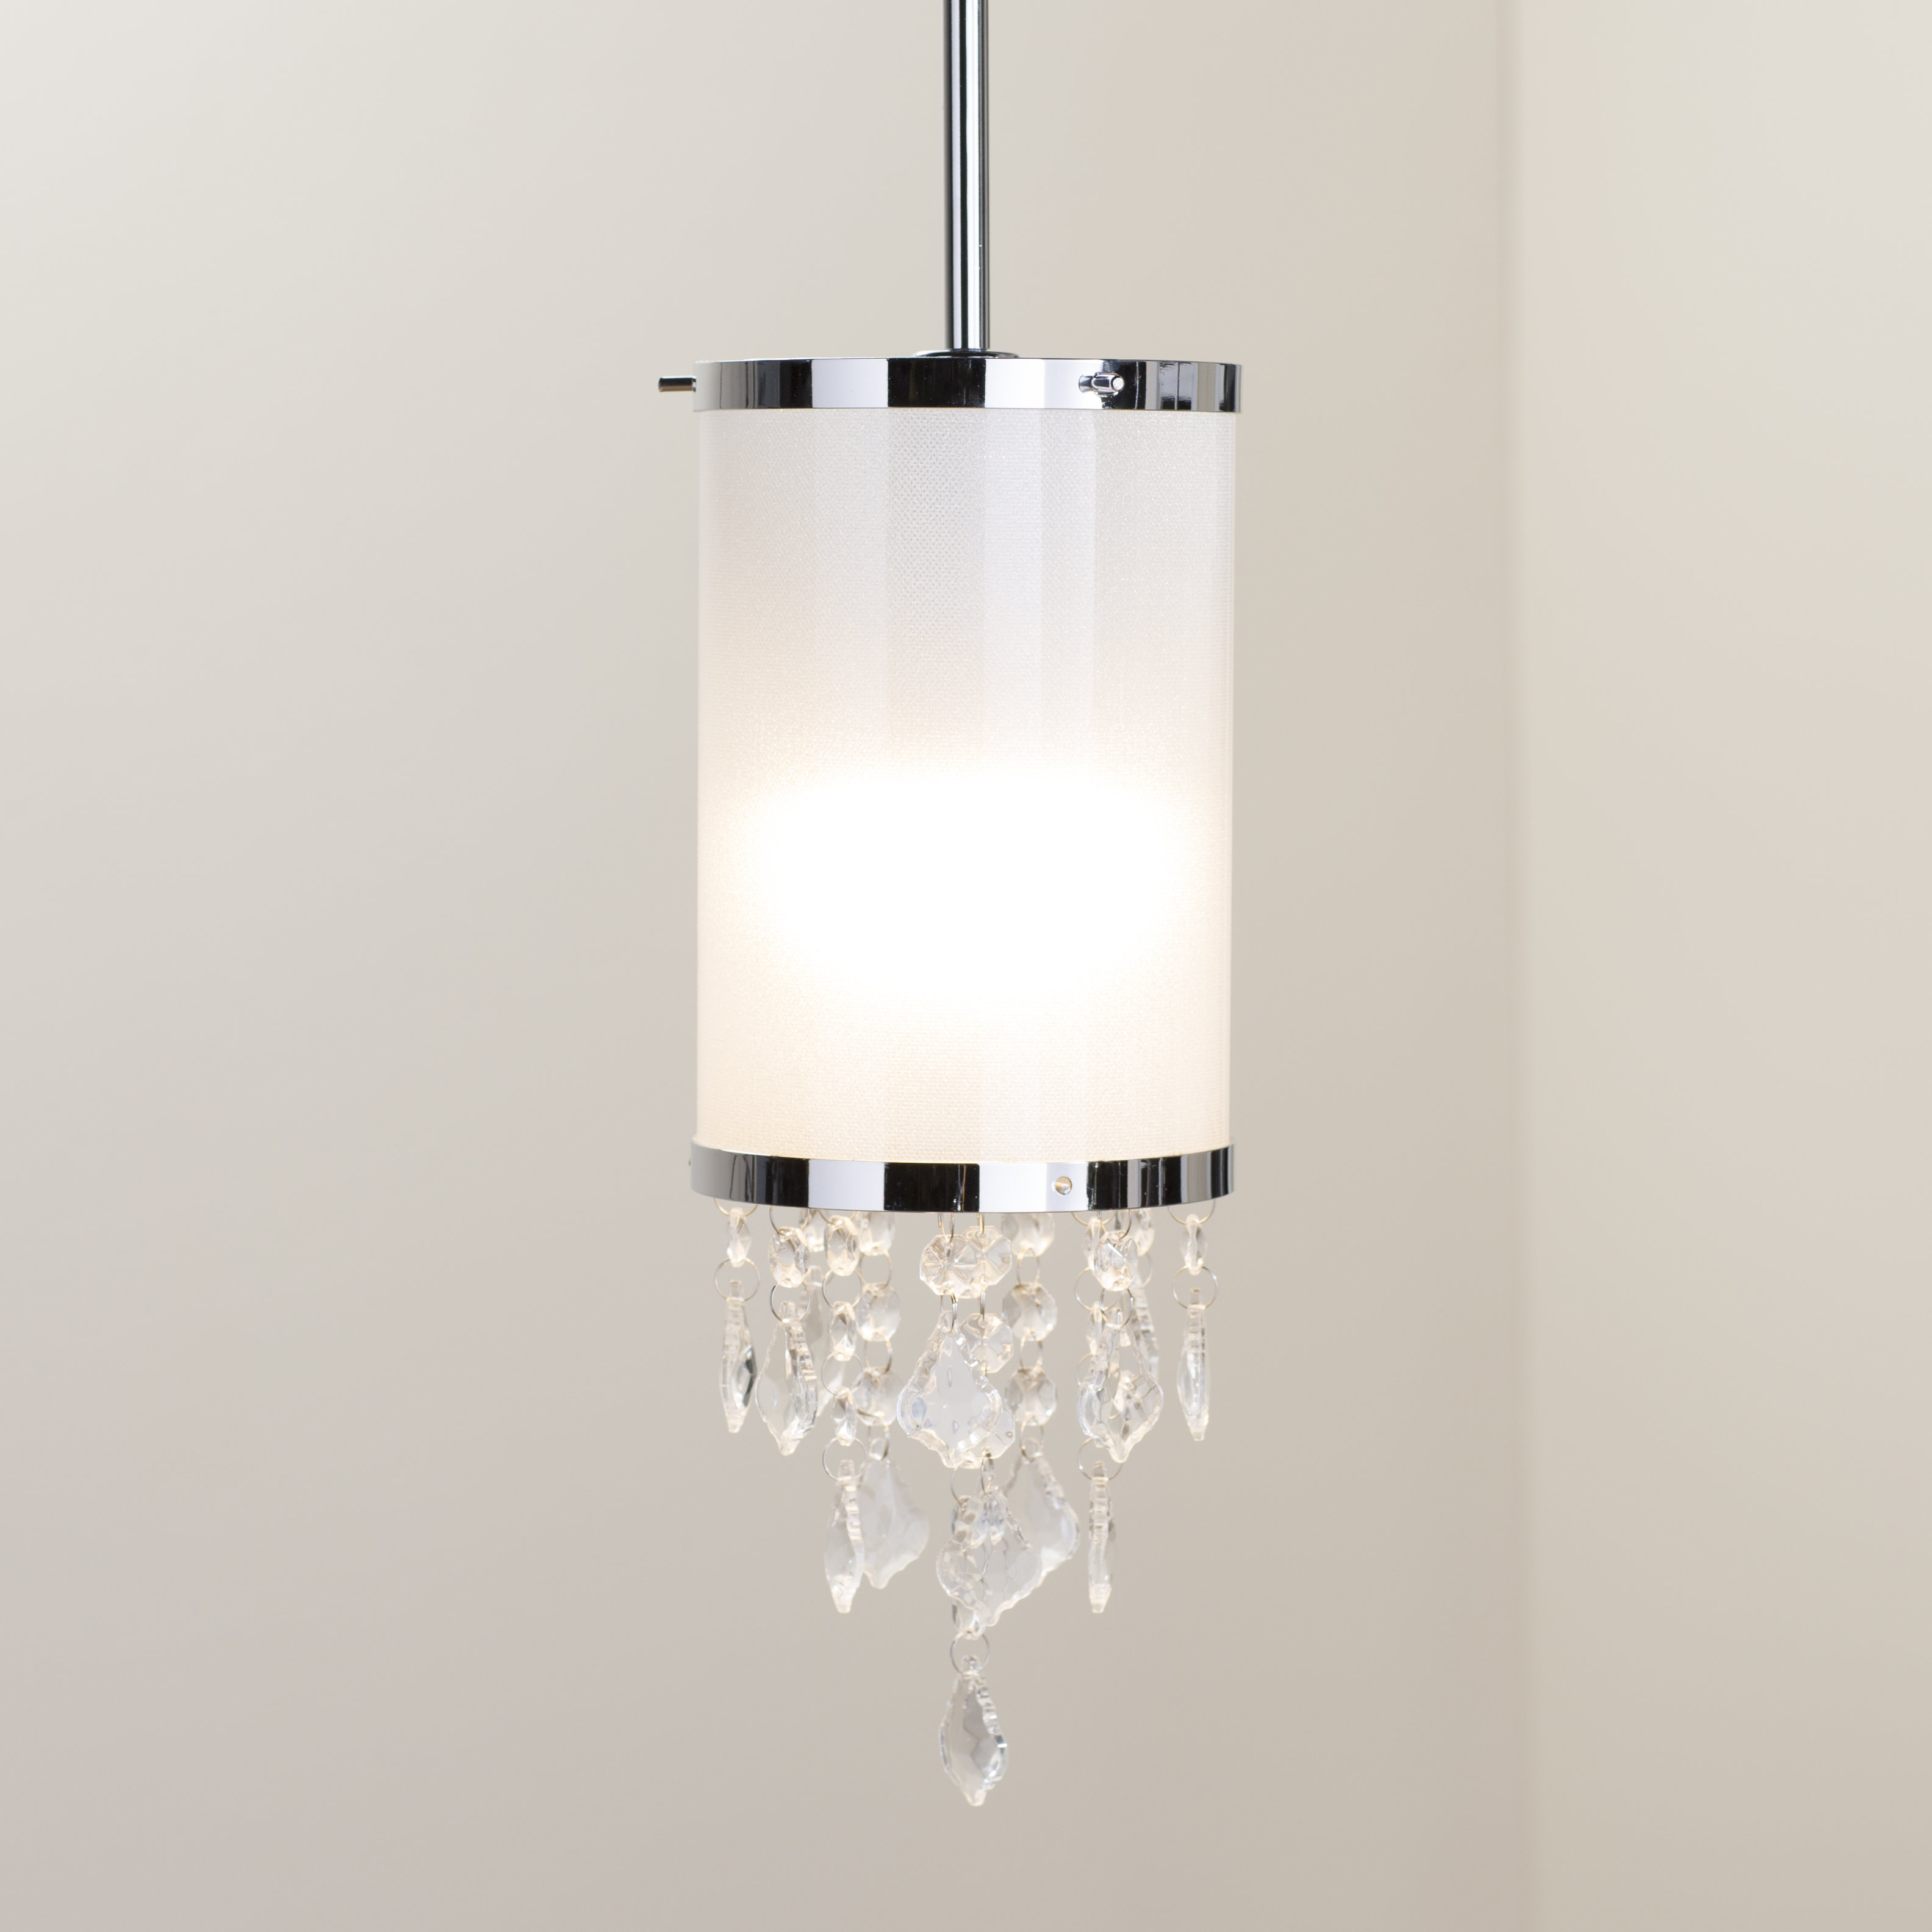 "Crystal Mini (less Than 10"" Wide) Pendant Lighting You'll For Kraker 1 Light Single Cylinder Pendants (View 9 of 30)"